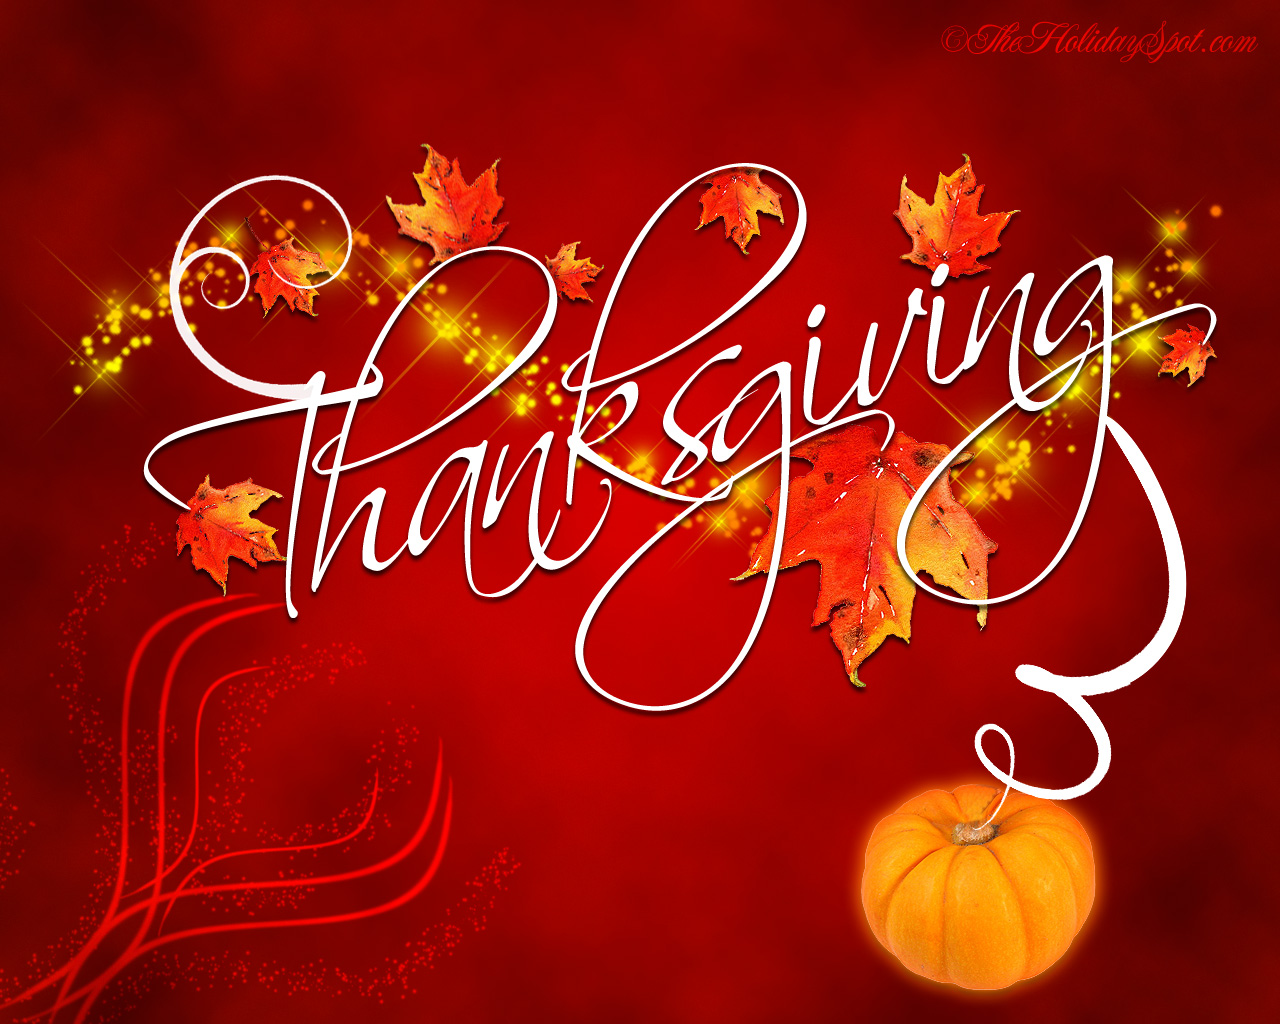 free fun thanksgiving wallpapers - photo #35